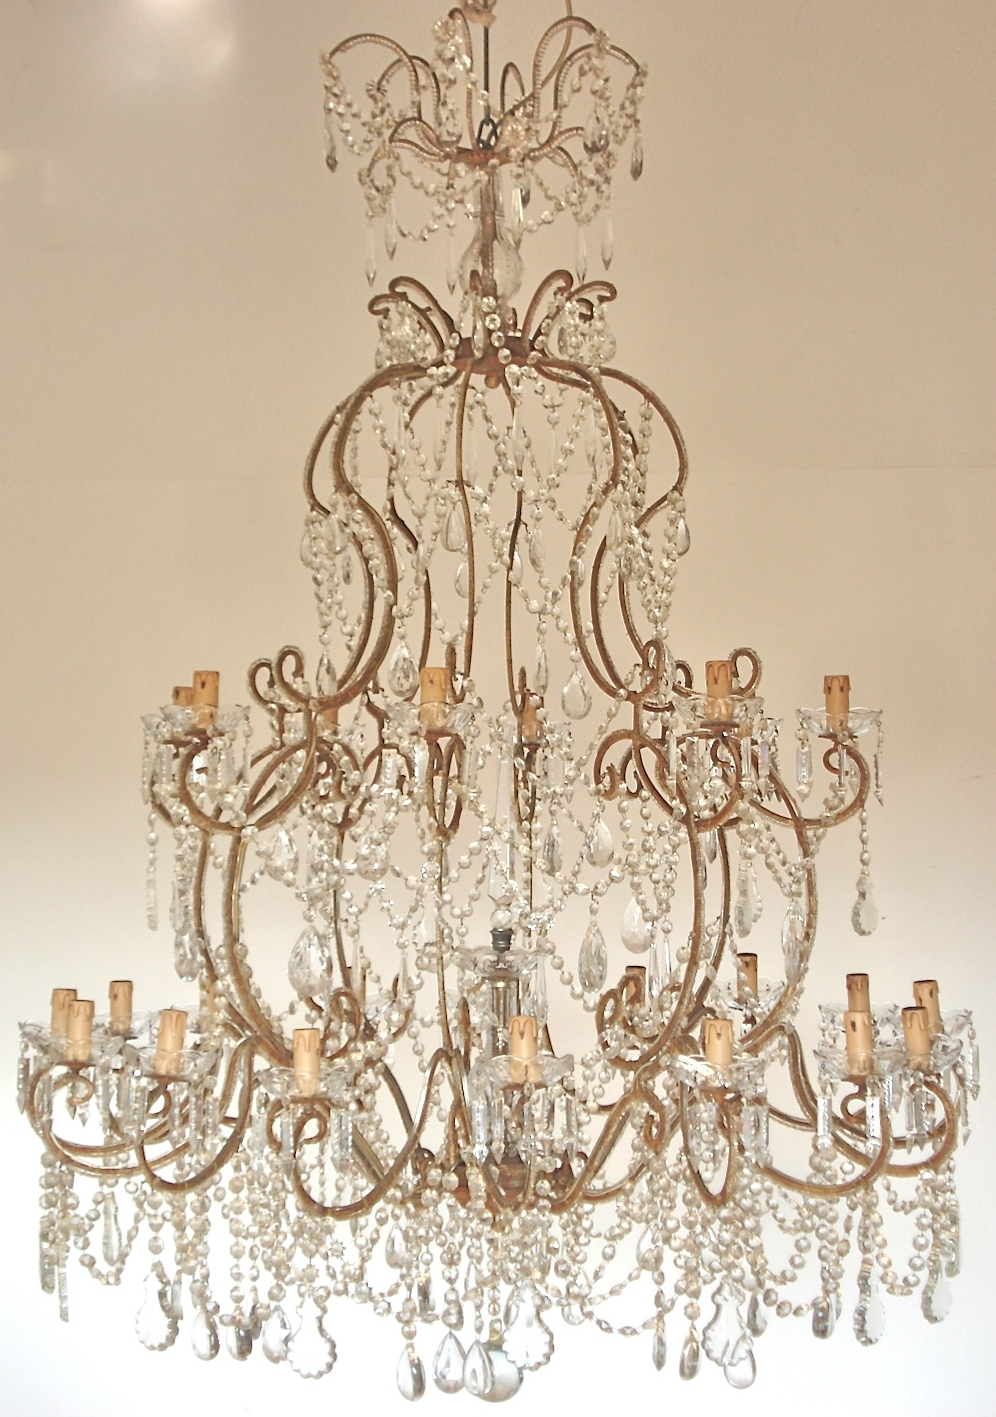 The Italian Chandelier Pertaining To Italian Chandeliers (Image 15 of 15)